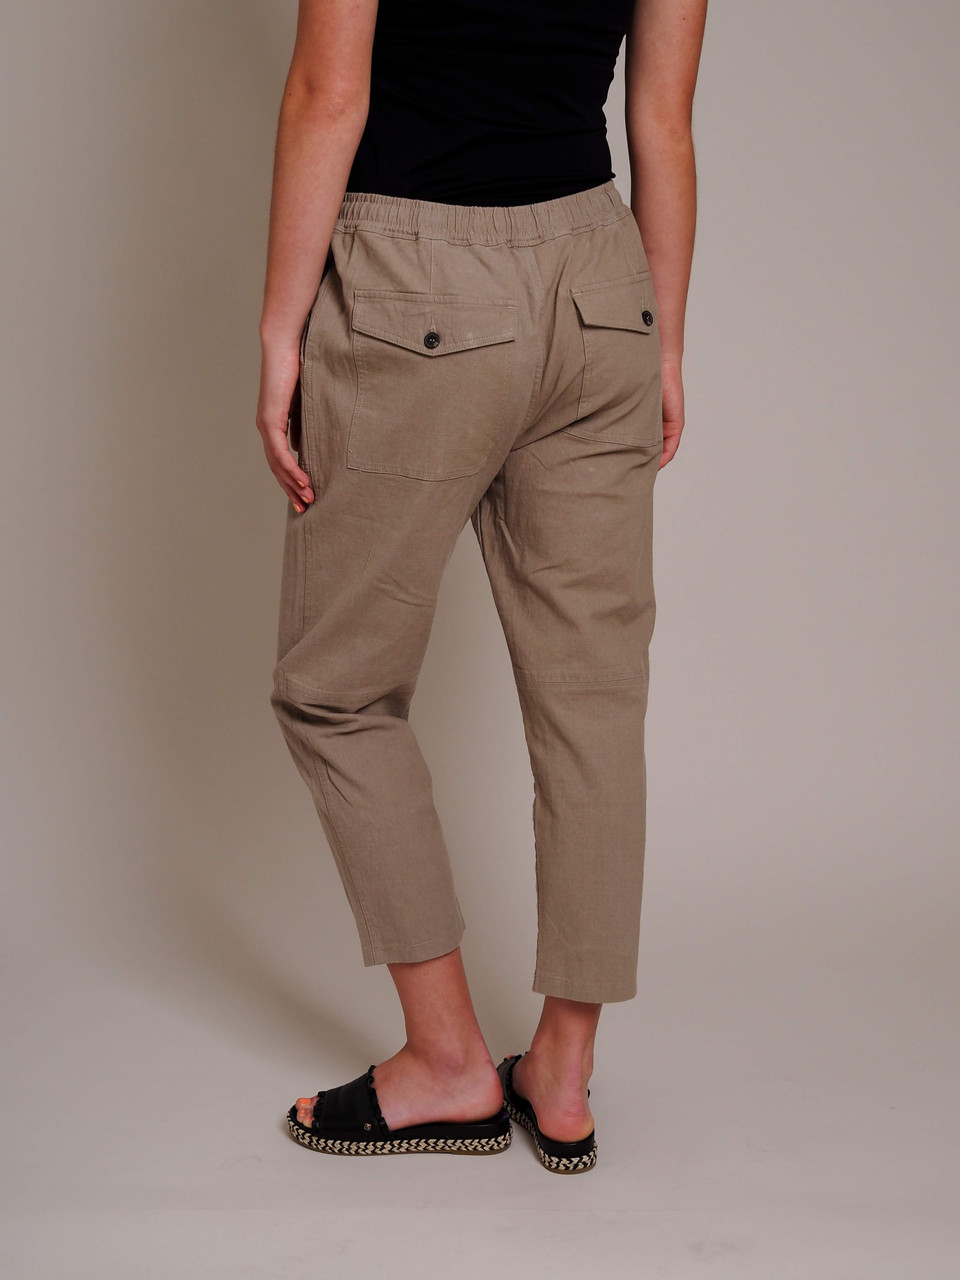 khaki brown drawstring pants